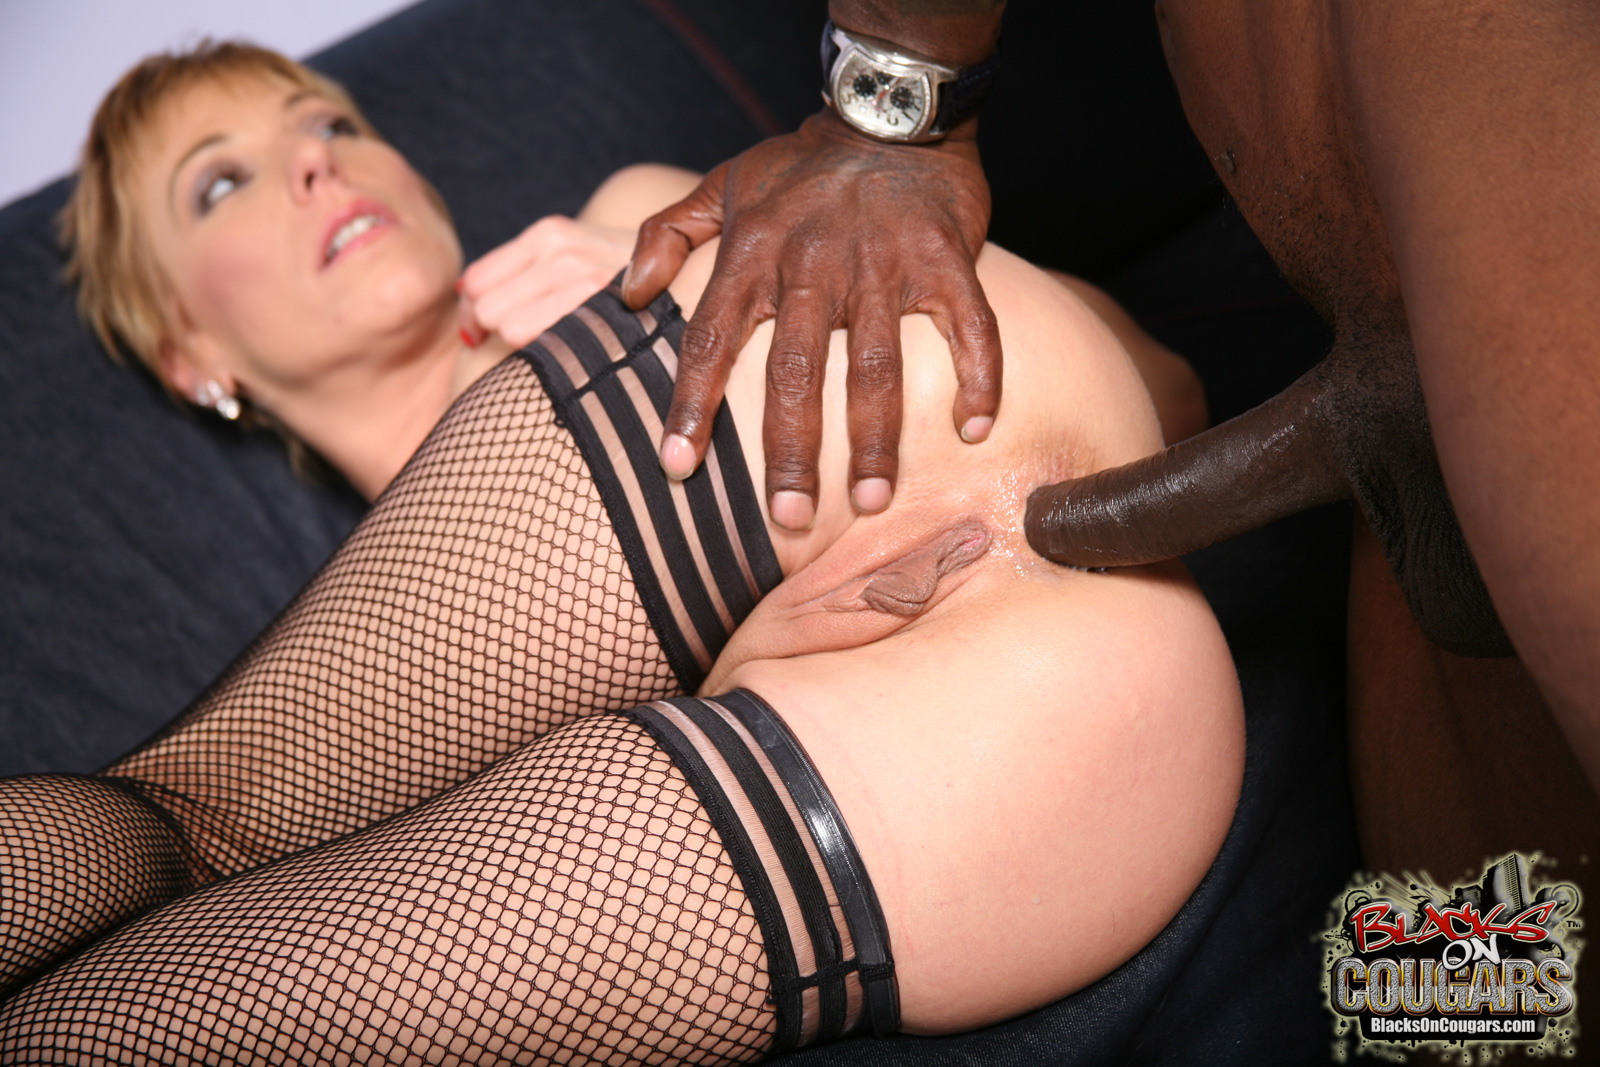 Interracial cooger sex